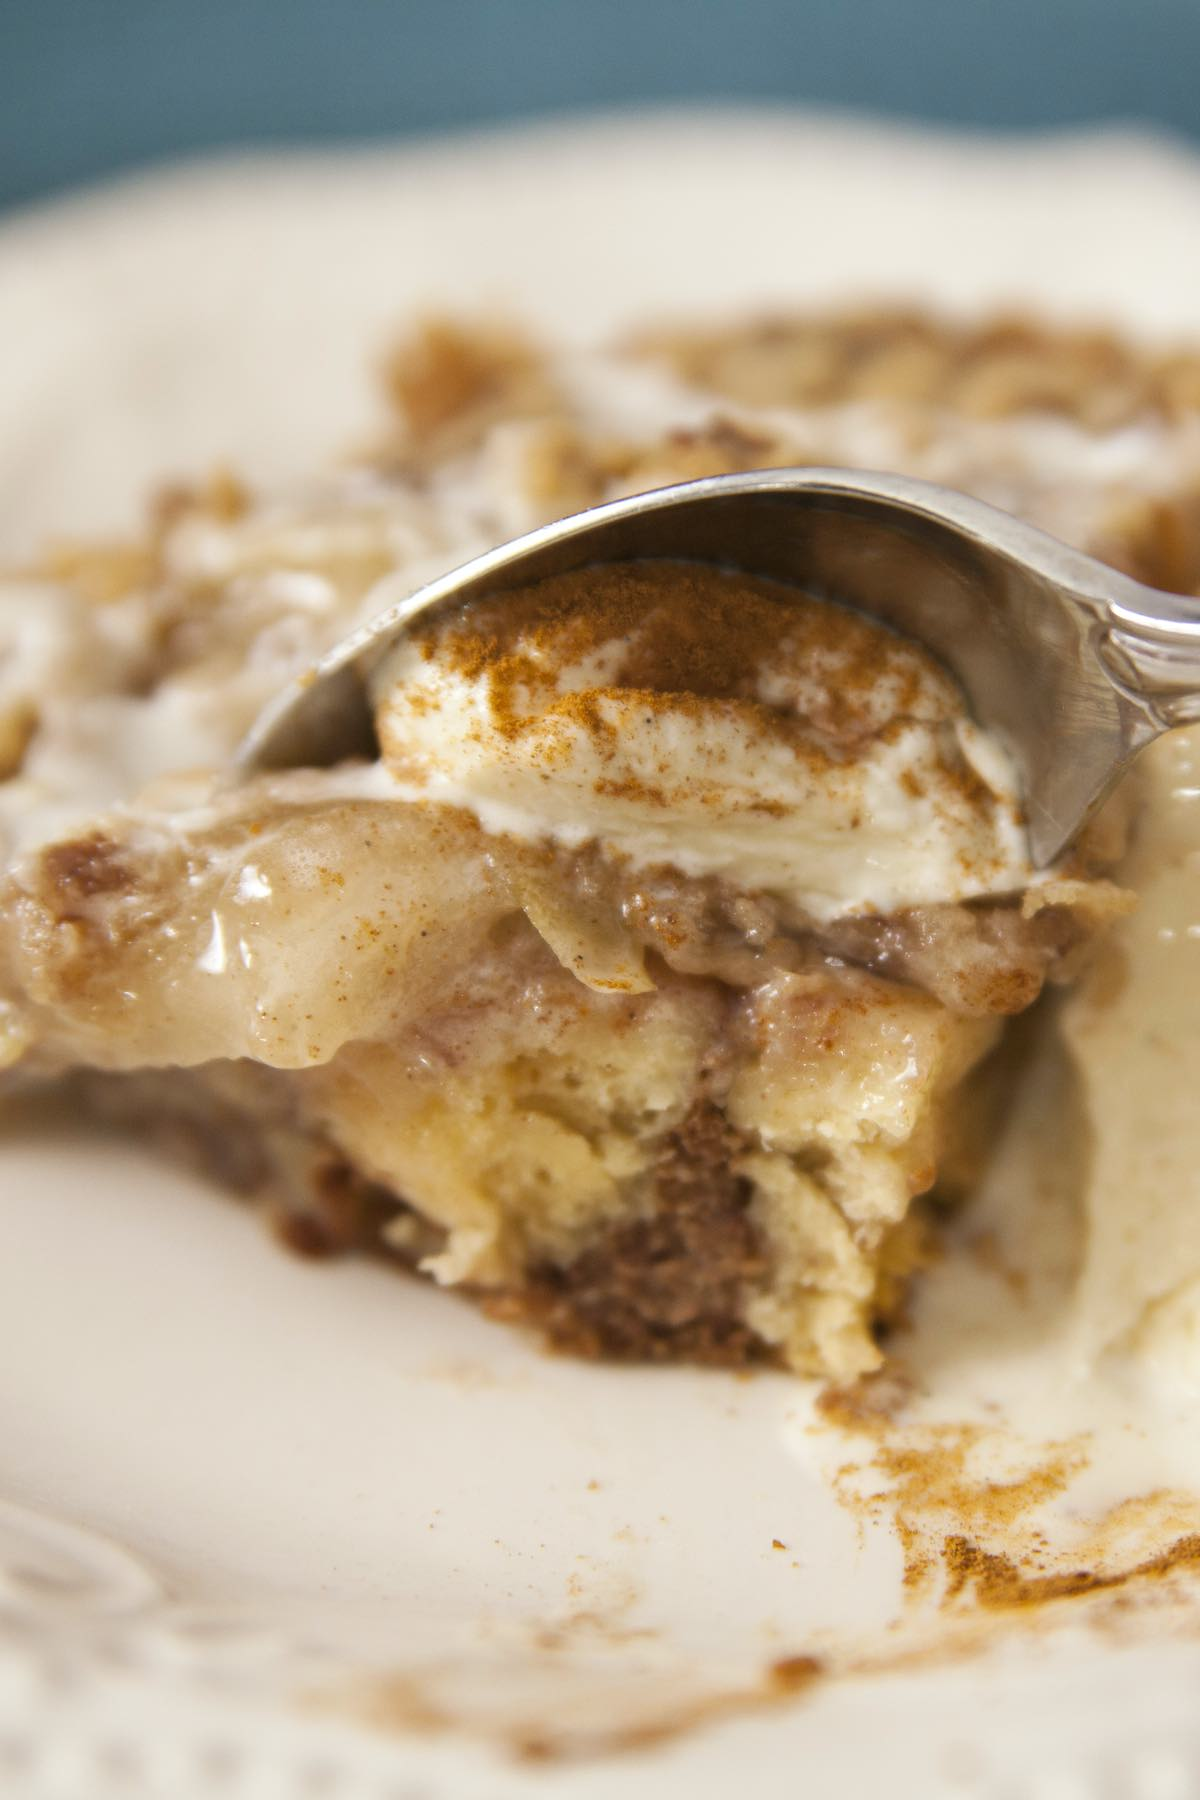 Cinnamon rolls with apple pie filling and topped with ice cream